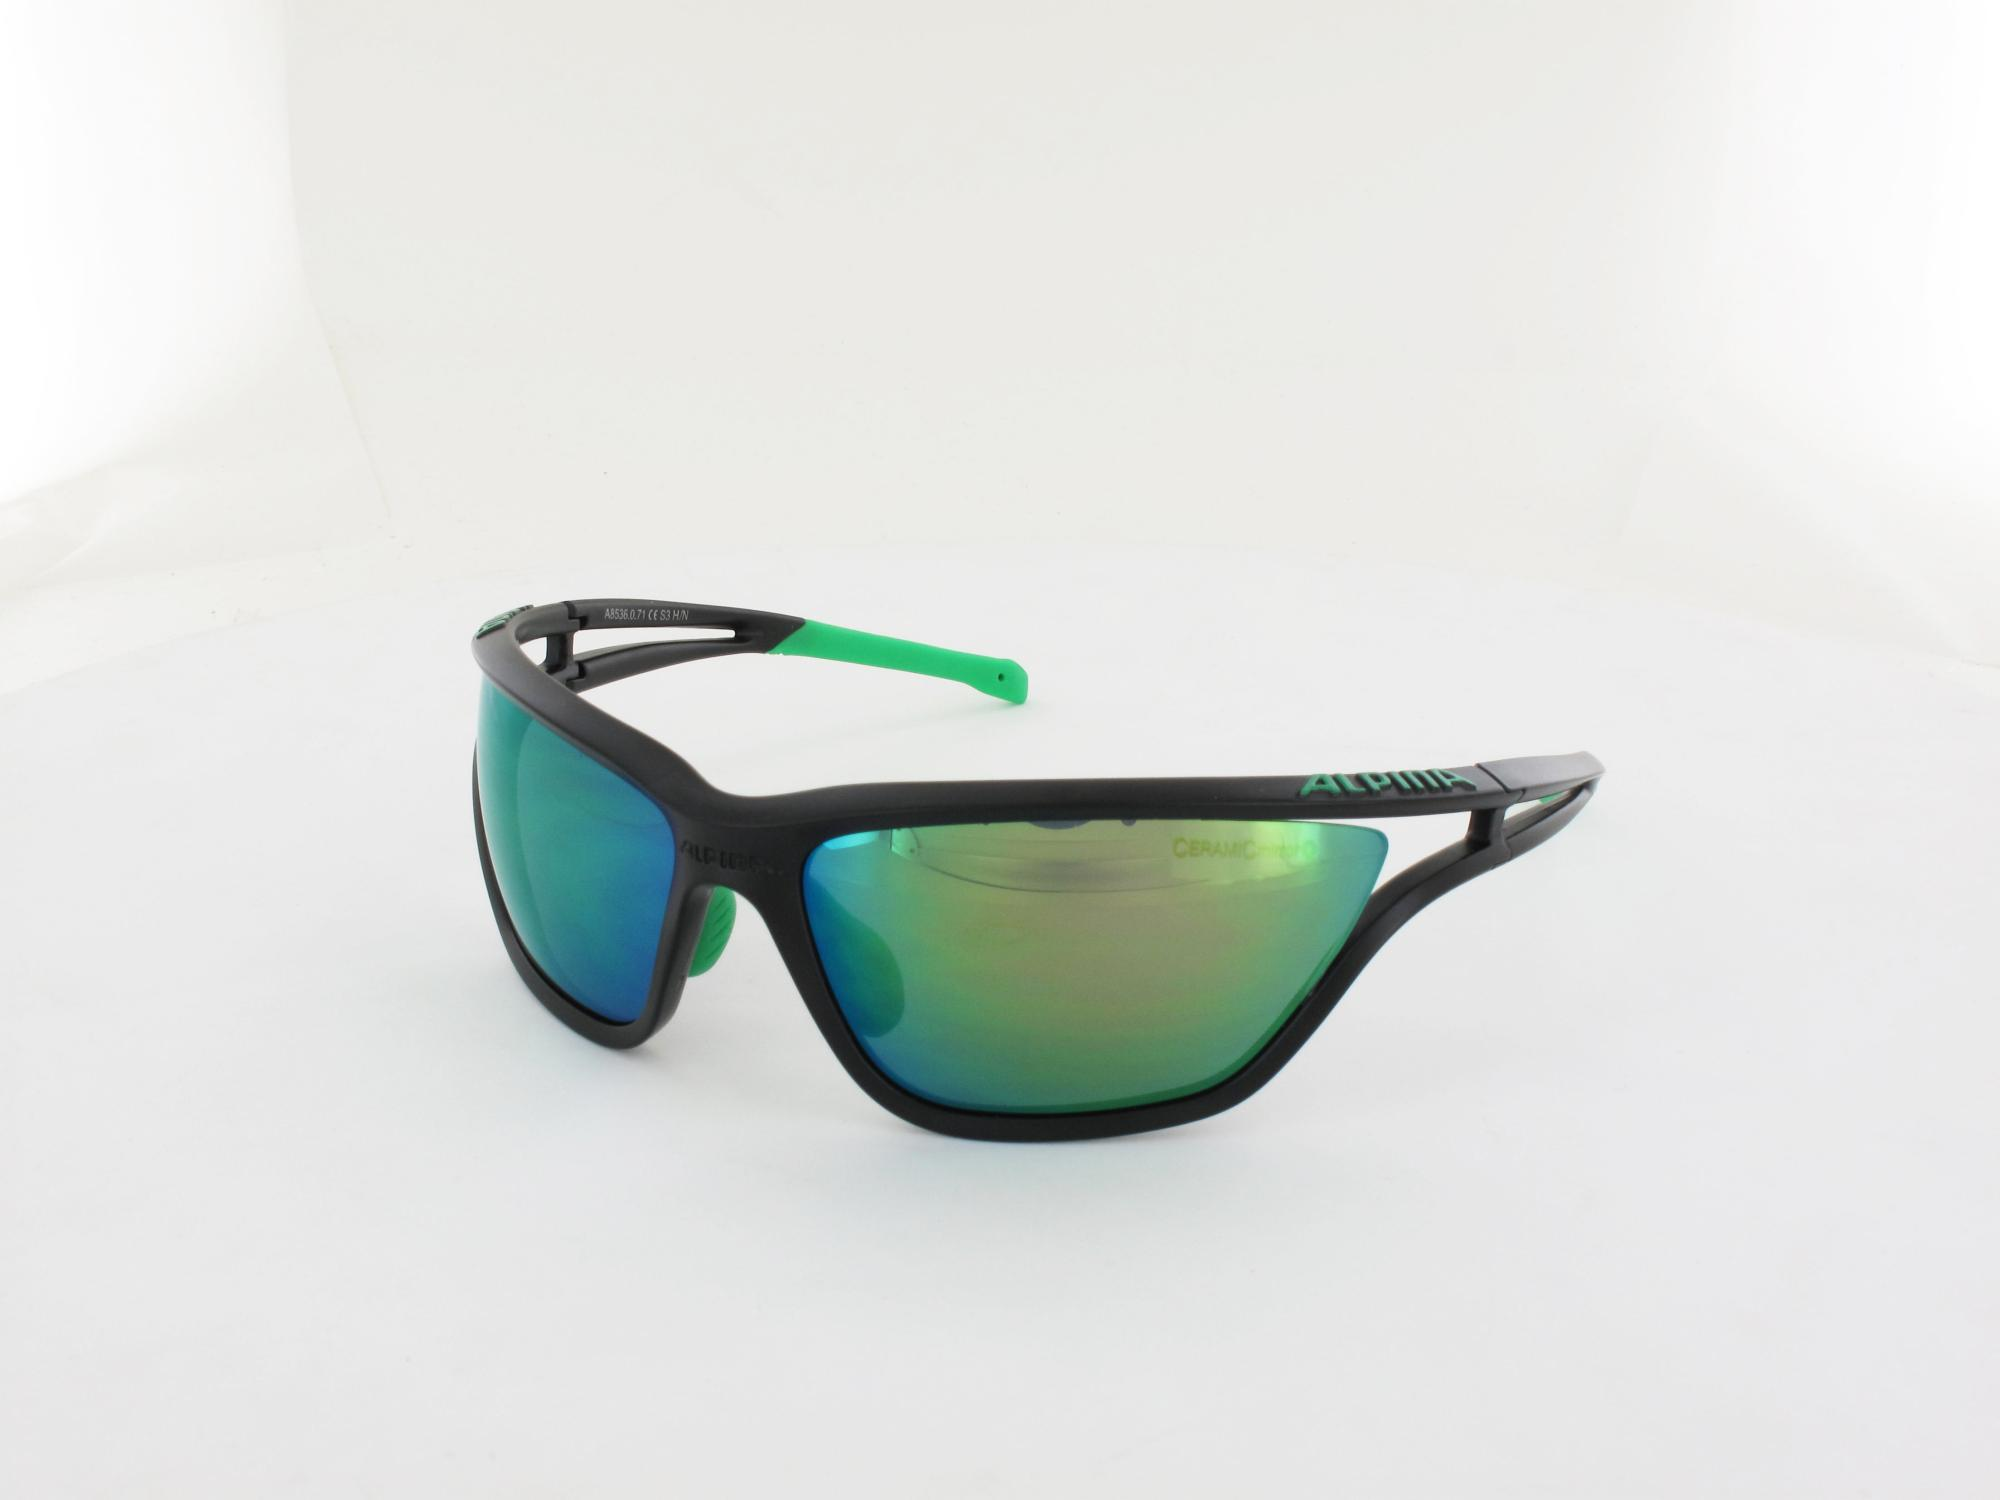 ALPINA | Eye-5 CM+ A8536 071 71 | black matt / CM+ green